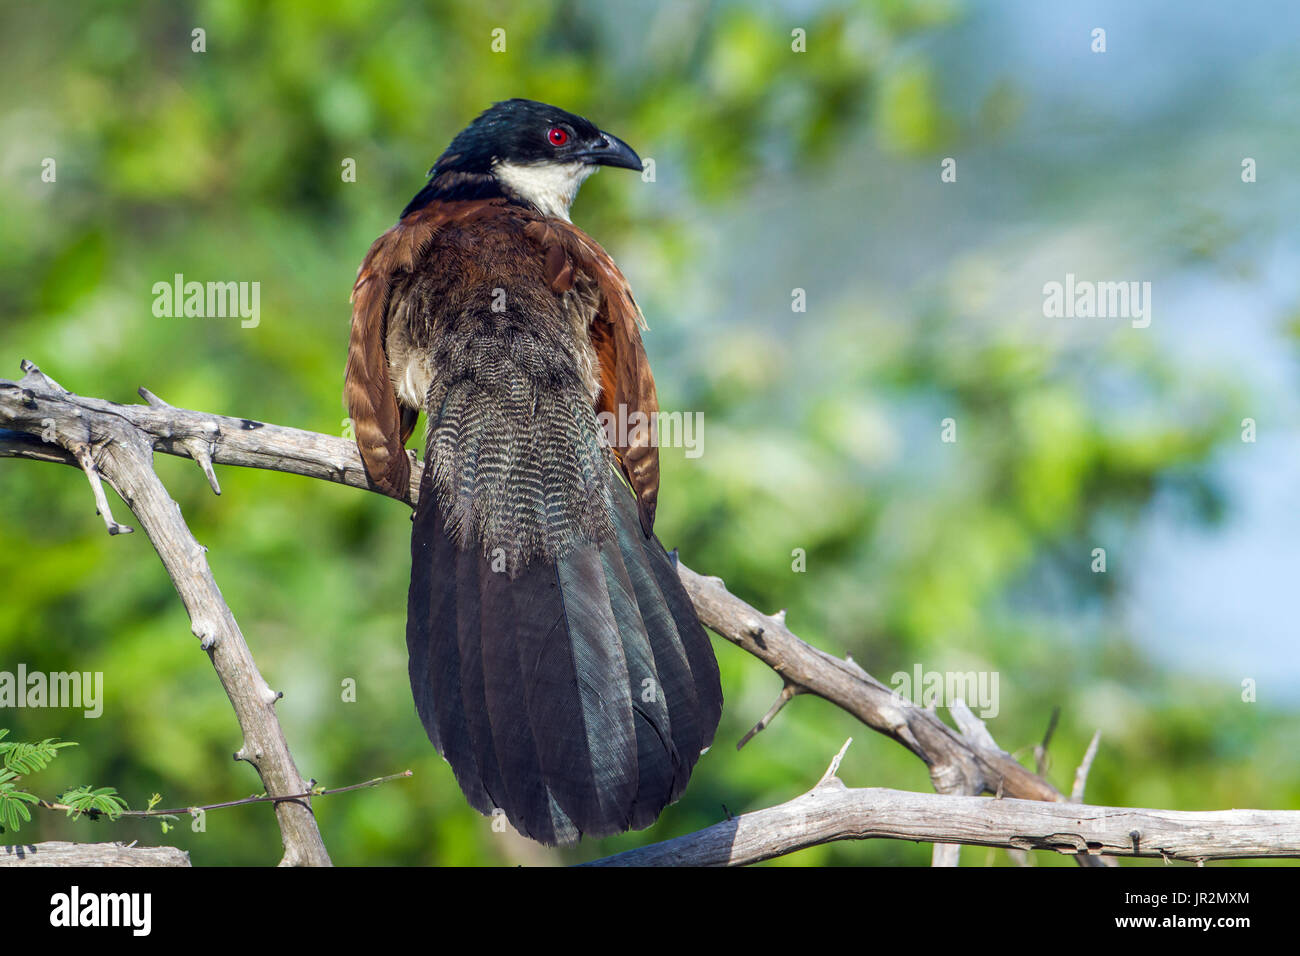 Burchell Coucal (Centropus superciliosus) on a branch, Kruger National park, South Africa - Stock Image